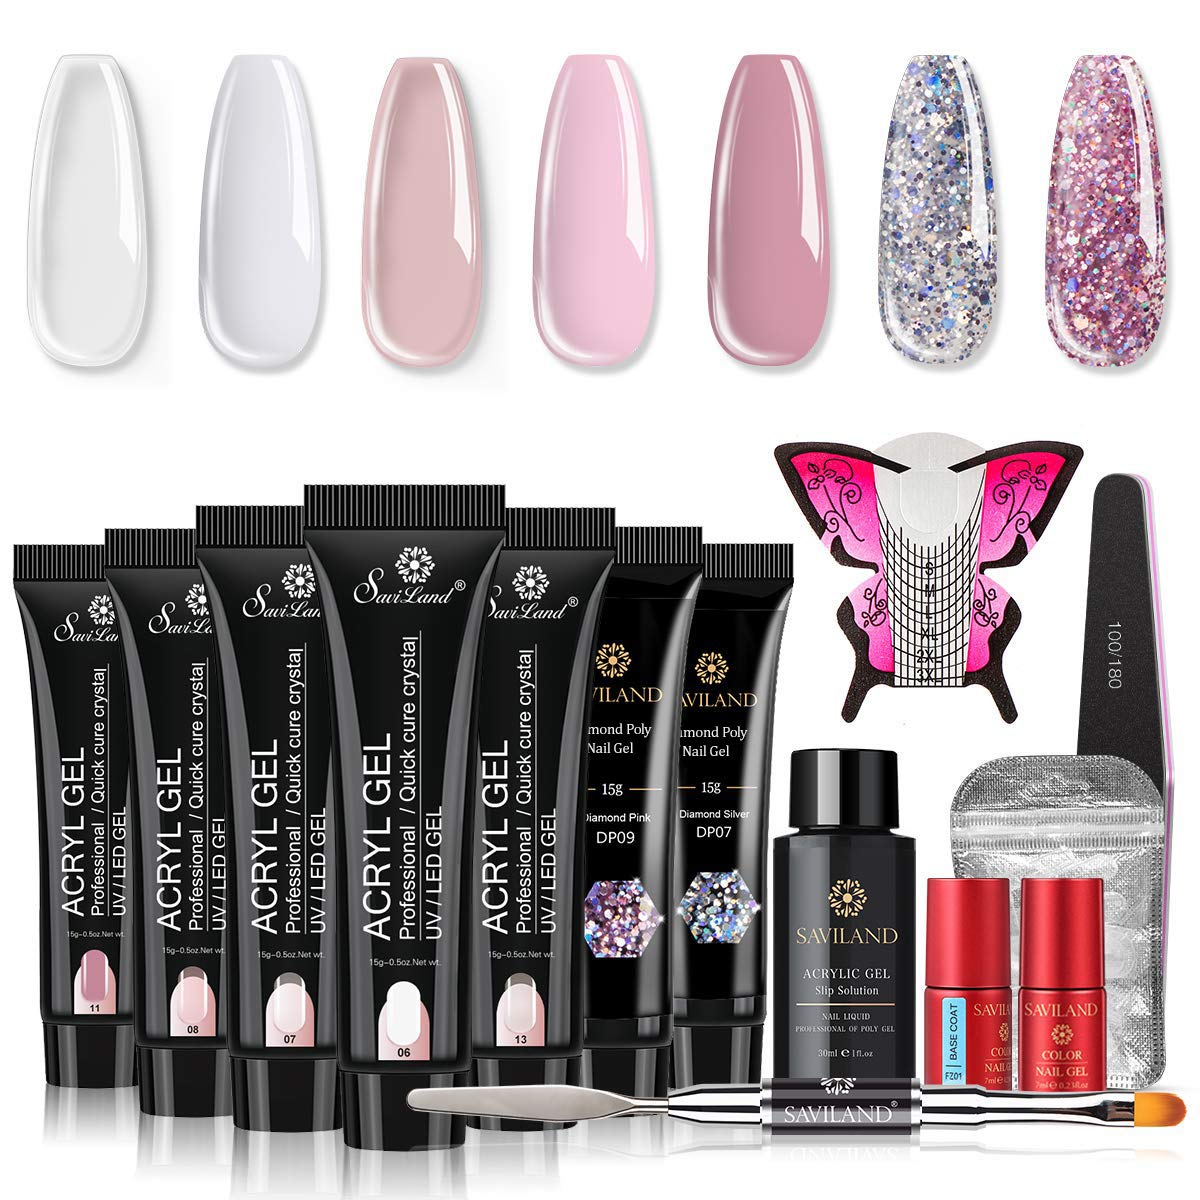 Saviland Poly Nail Gel Kit - Glitter Poly Nail Gel 7 Colors Builder Gel Nude Nature Series Nail Extension Gel Nail Enhancement Manicure Kit for Gel Polish Starter and Professional Nail Technician